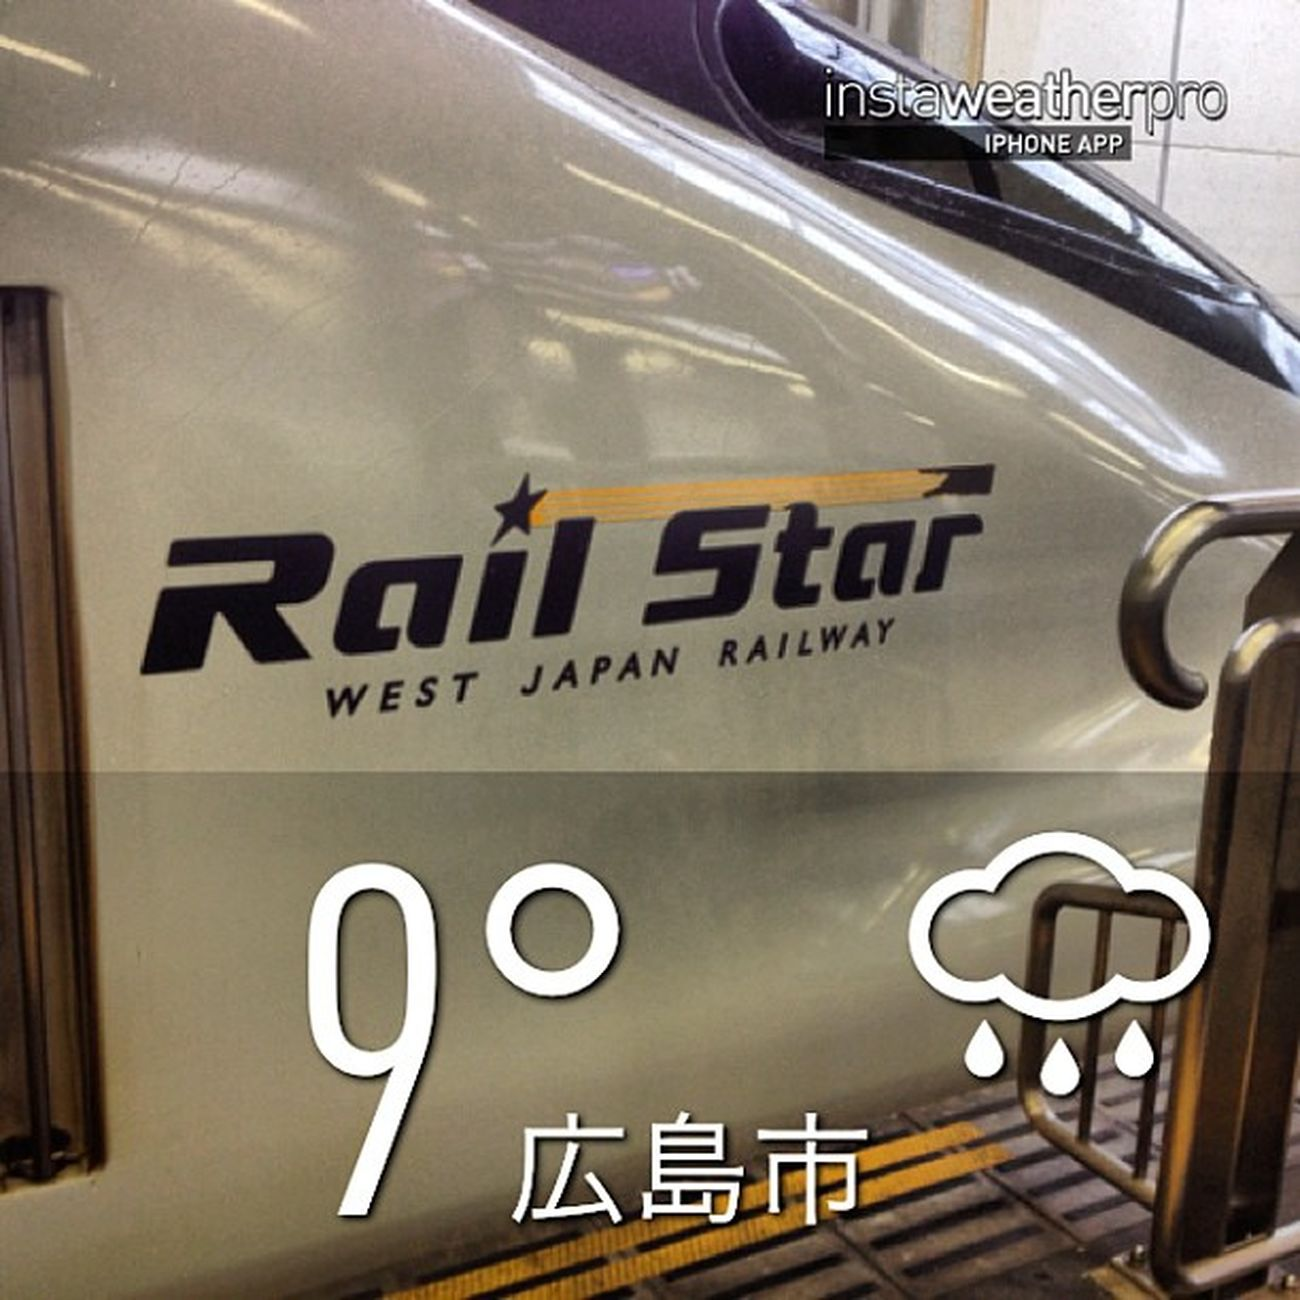 雨じゃー!\(^o^)/Weather Sky Instaweather Instaweatherpro Outdoors Nature 広島市 Hiroshimashi Japan Day Winter Rain Skypainters Cold Hiroshimaprefecture